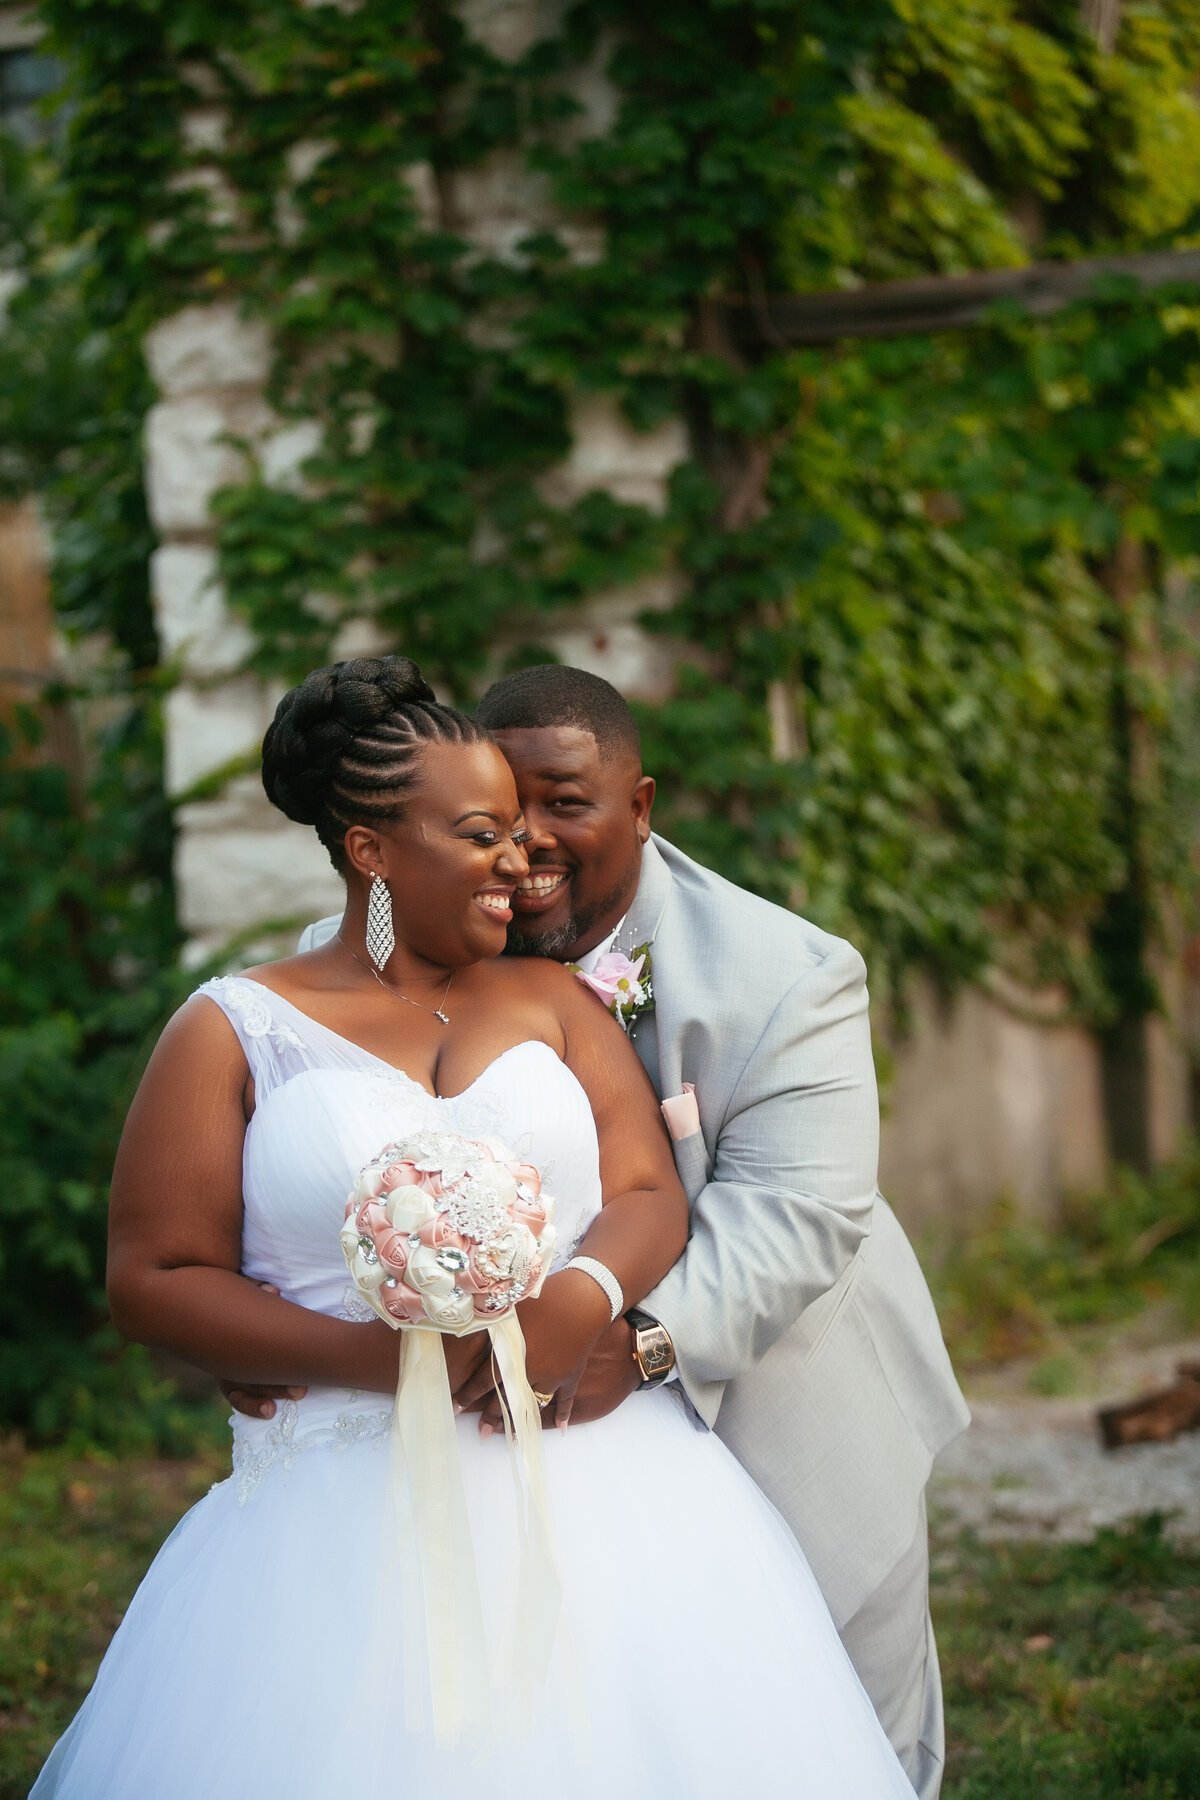 Black couple snuggles together at their summer wedding in St. Louis